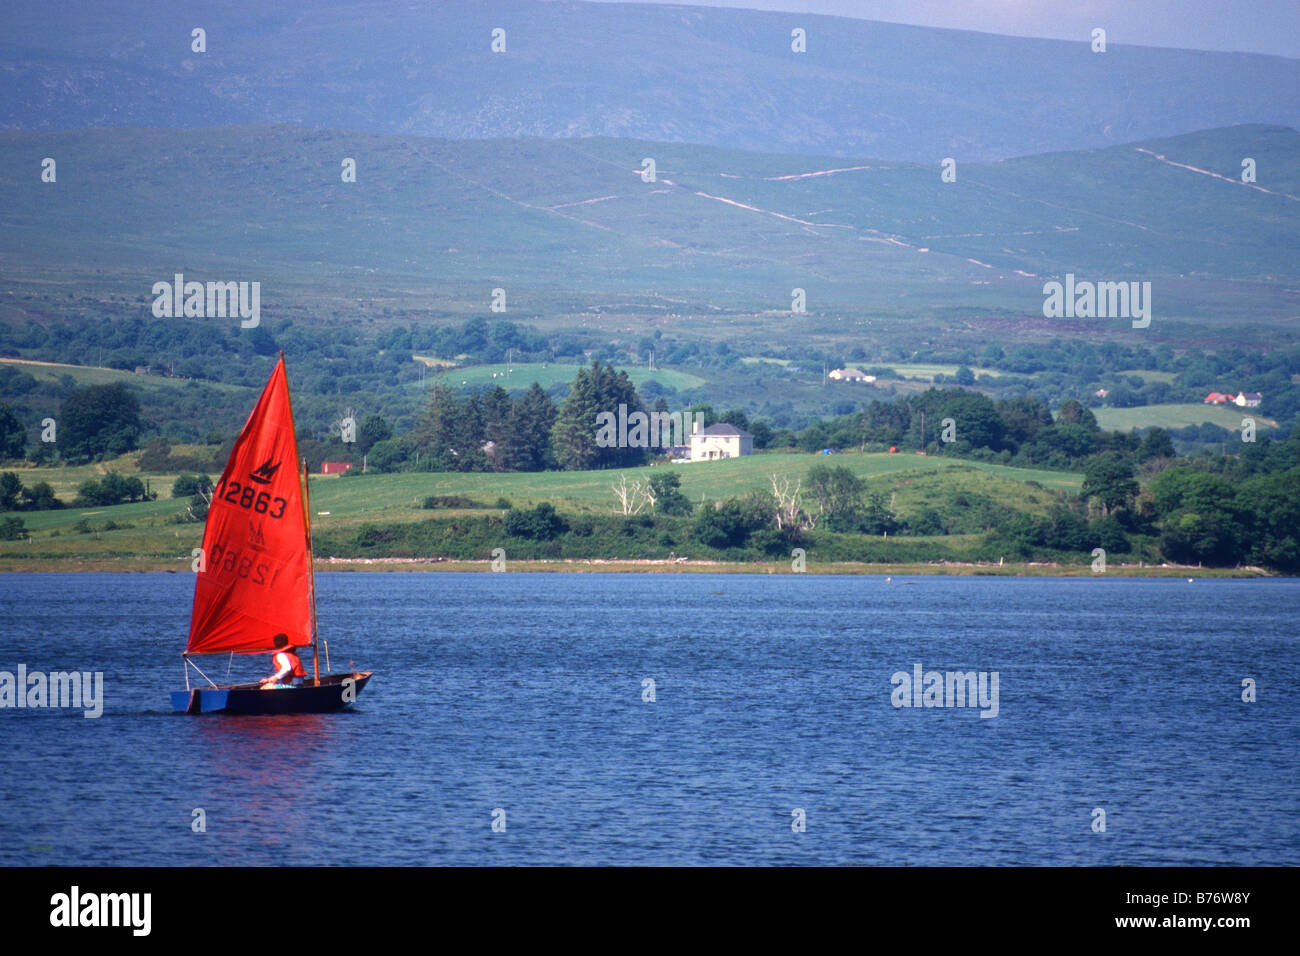 sailing-dinghy-with-red-sail-on-the-kenm